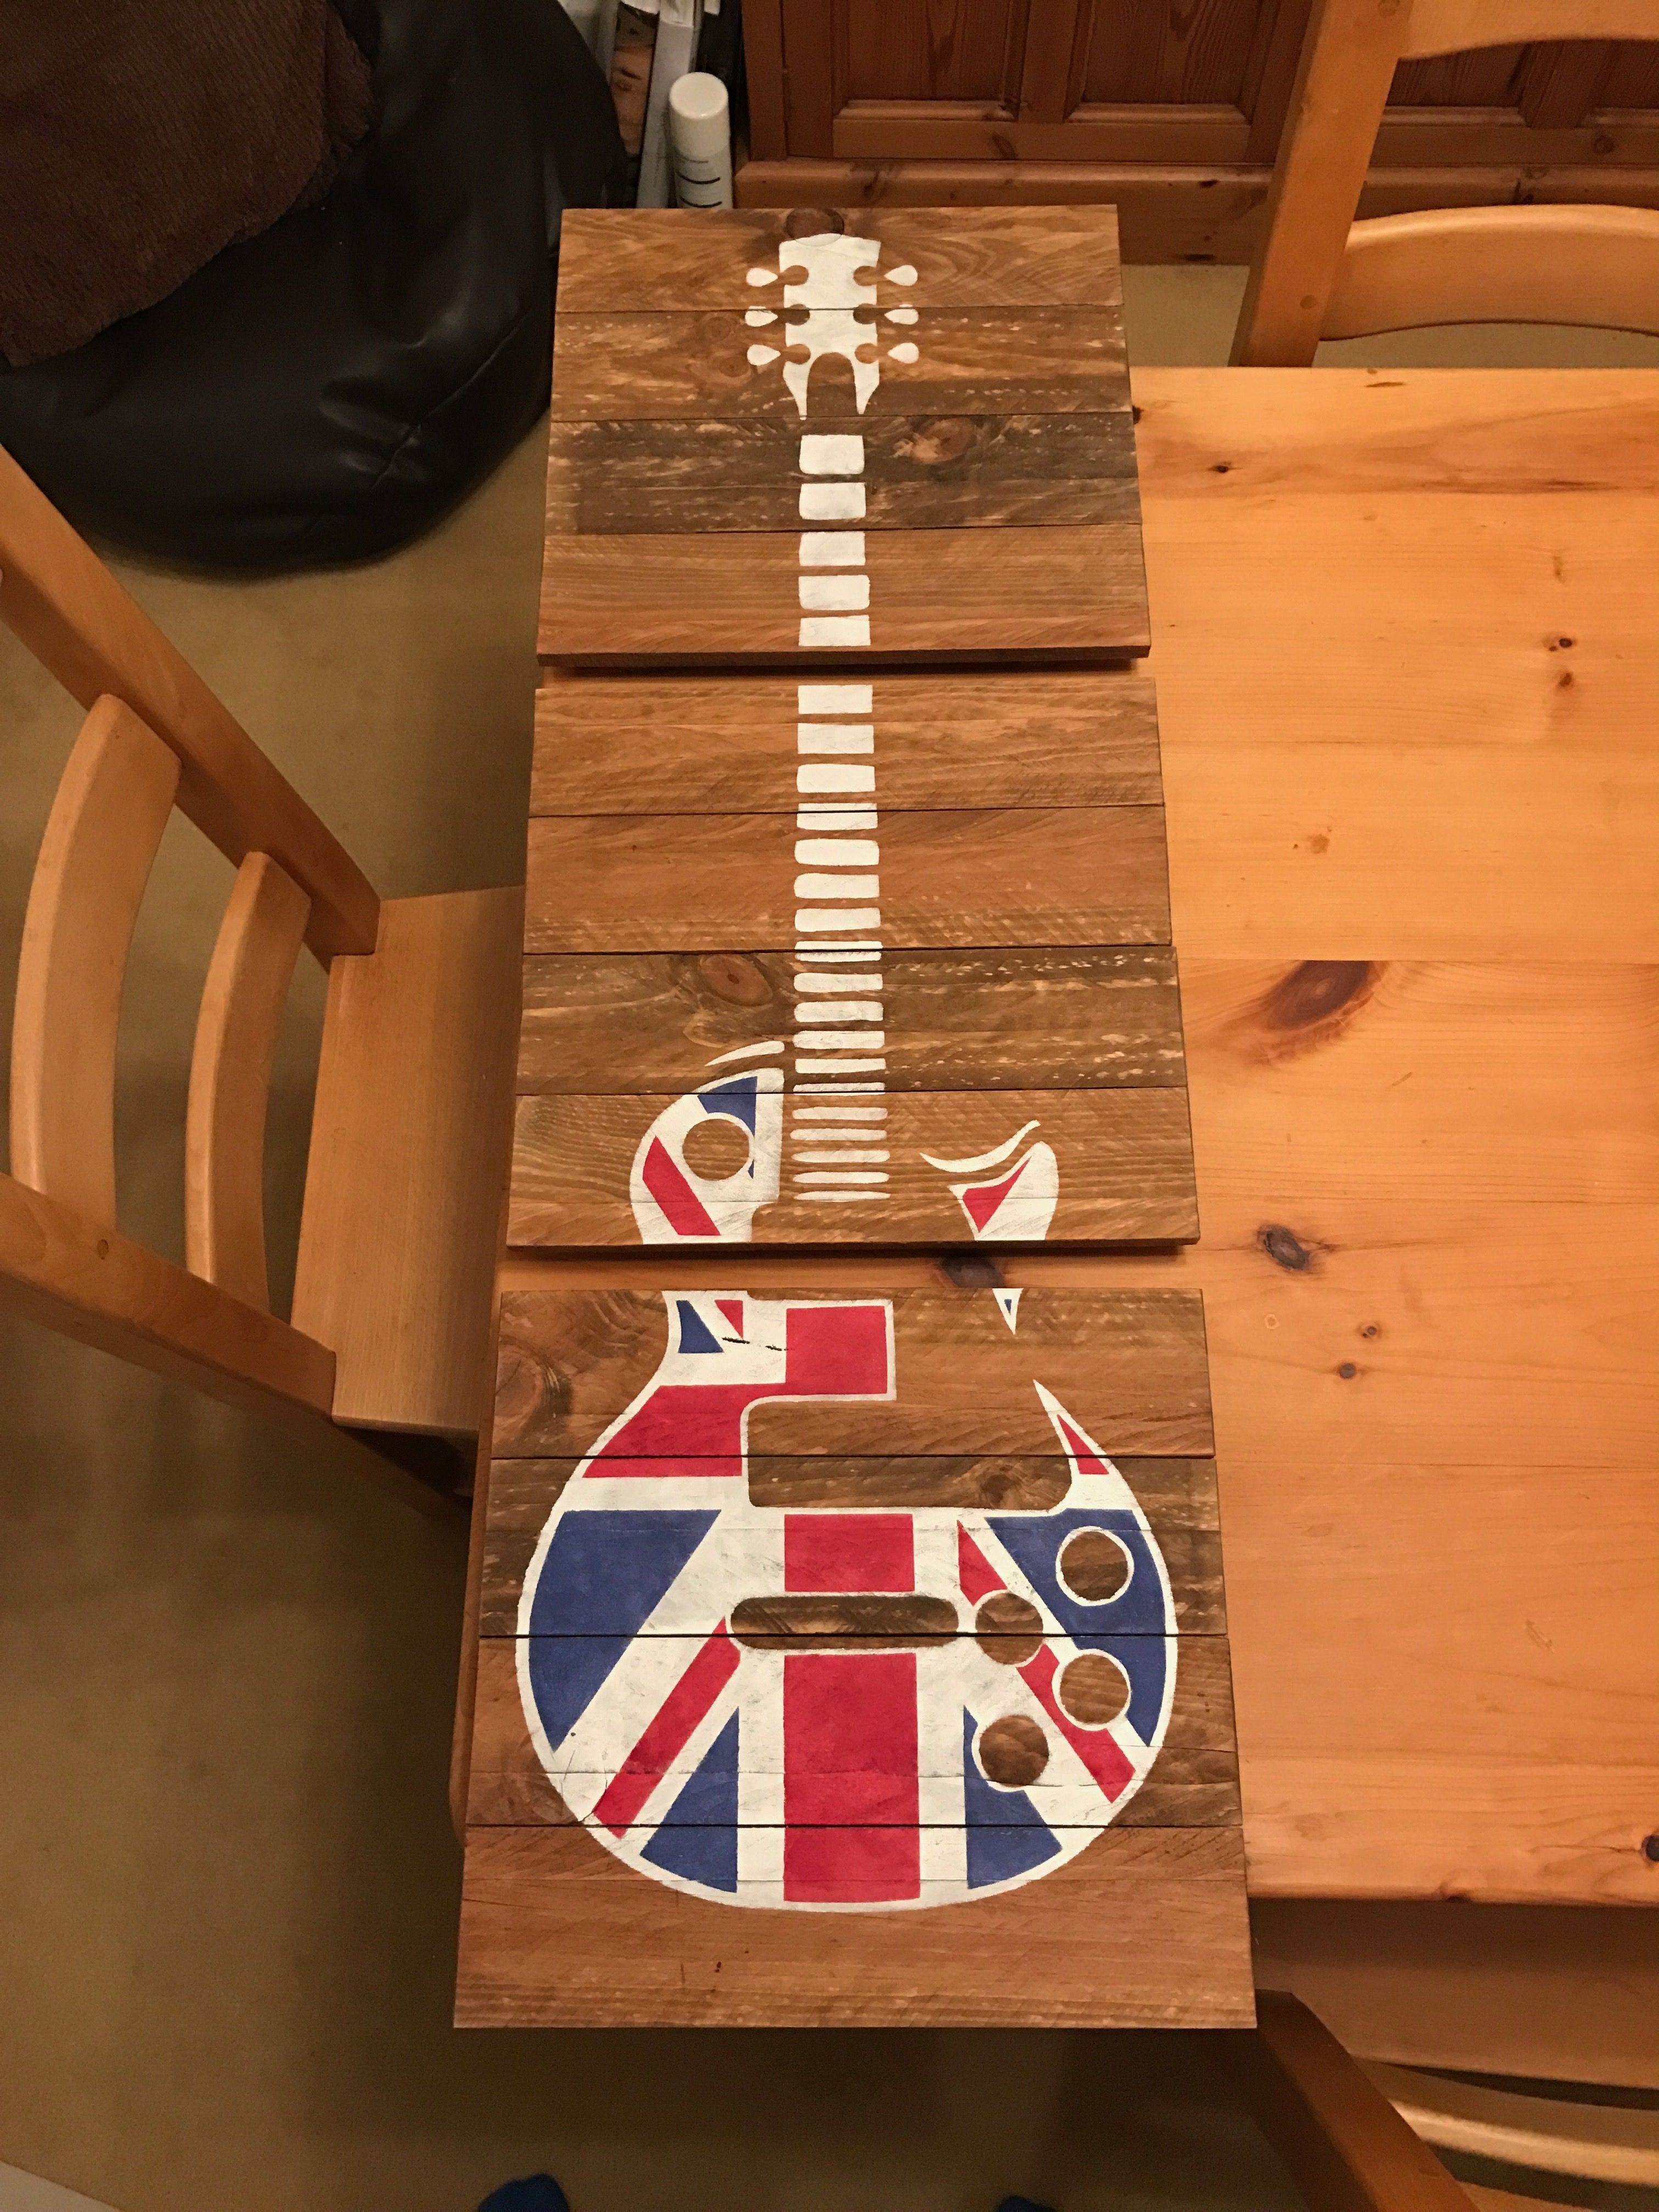 3 Pieces Wall Decor For Living Room: Union Jack 3 Piece Guitar Wall Art. Pretty Much Full Size